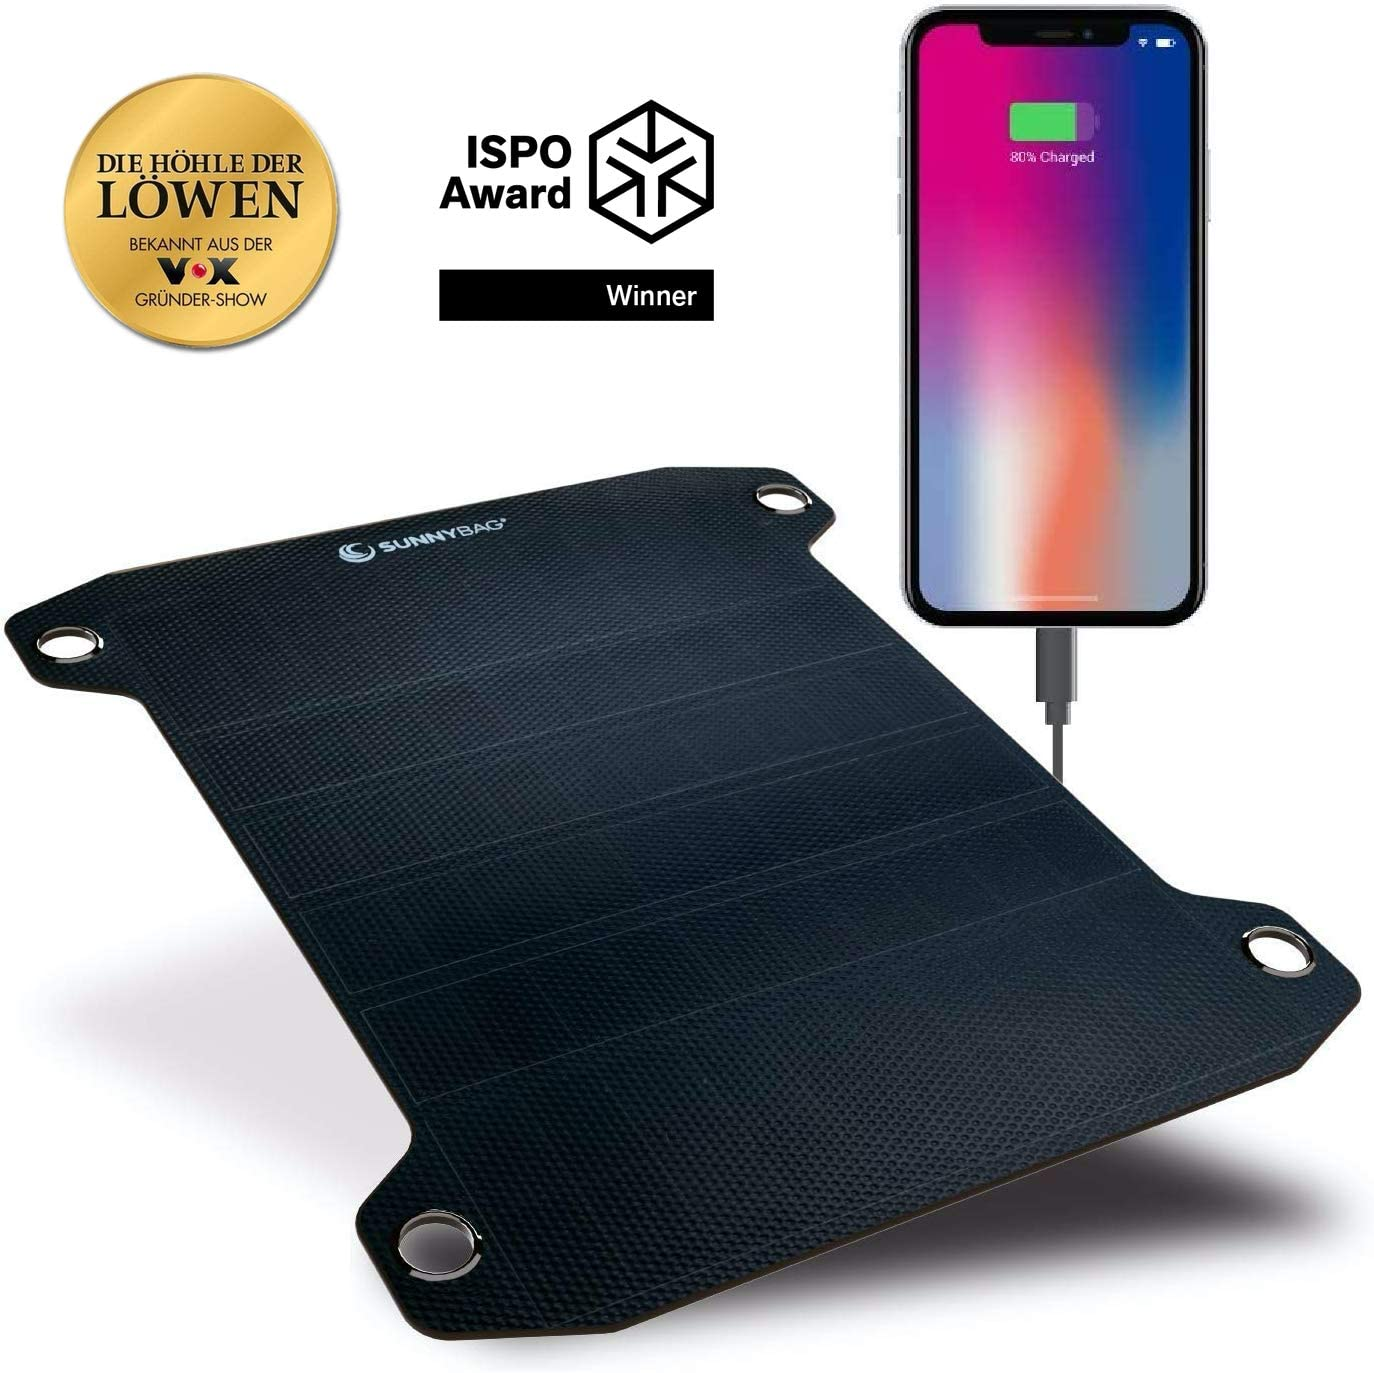 Sunnybag Leaf PRO | Premium Outdoor Solar Charger | The World's Most Powerful Water Flexible Solar Panel | ISPO Award Winner | Ultra-Light and Robust